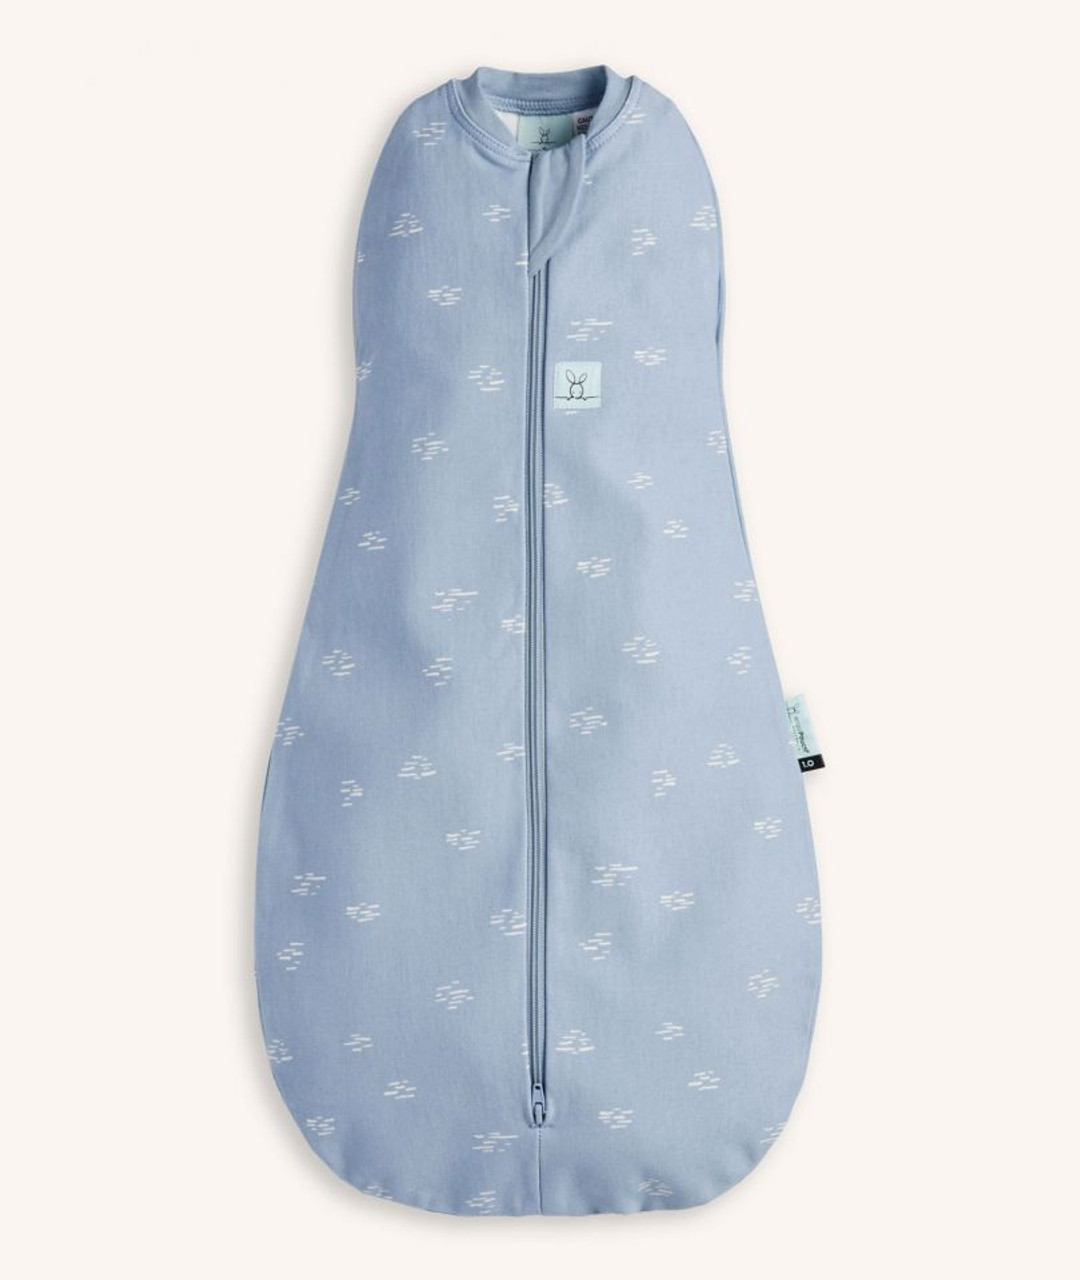 ergoPouch Cocoon Swaddle Bag 0.2 Tog 0-3 Months at Baby Barn Discounts Lightweight newborn swaddle  from ergoPouch perfect for summer nights sleep.